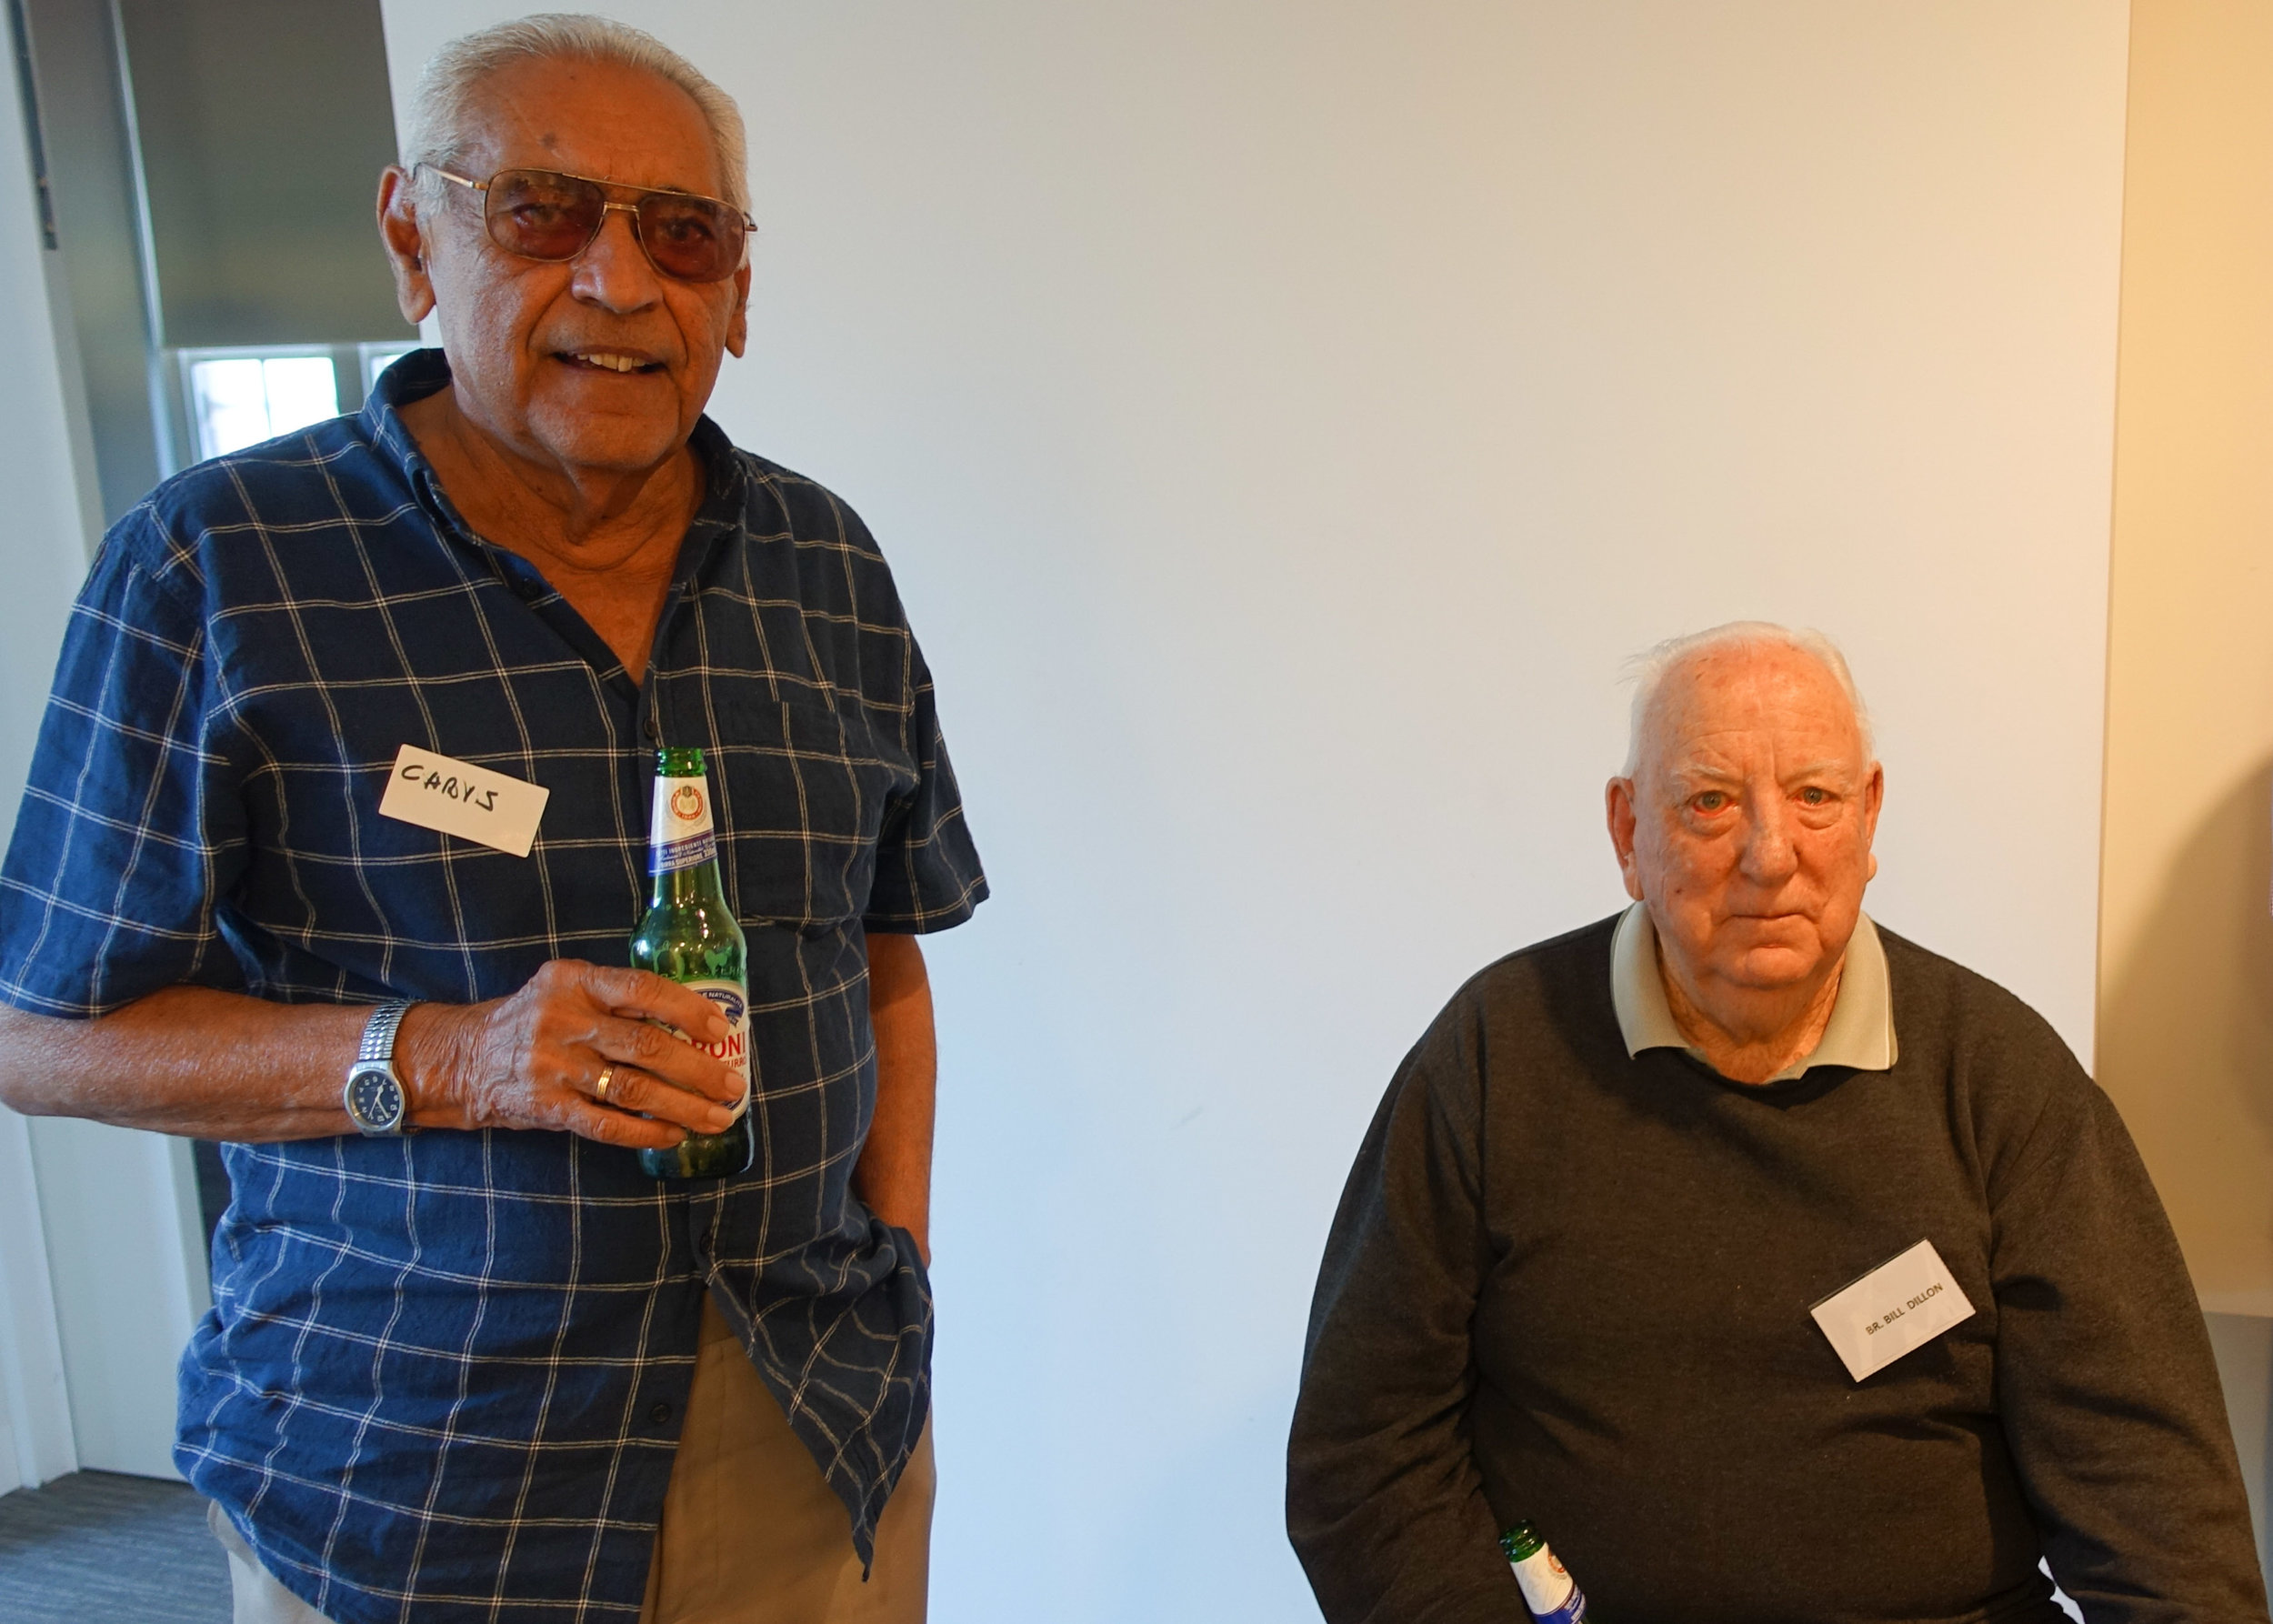 Chris Robers and Br Bill Dillon enjoying a beer together